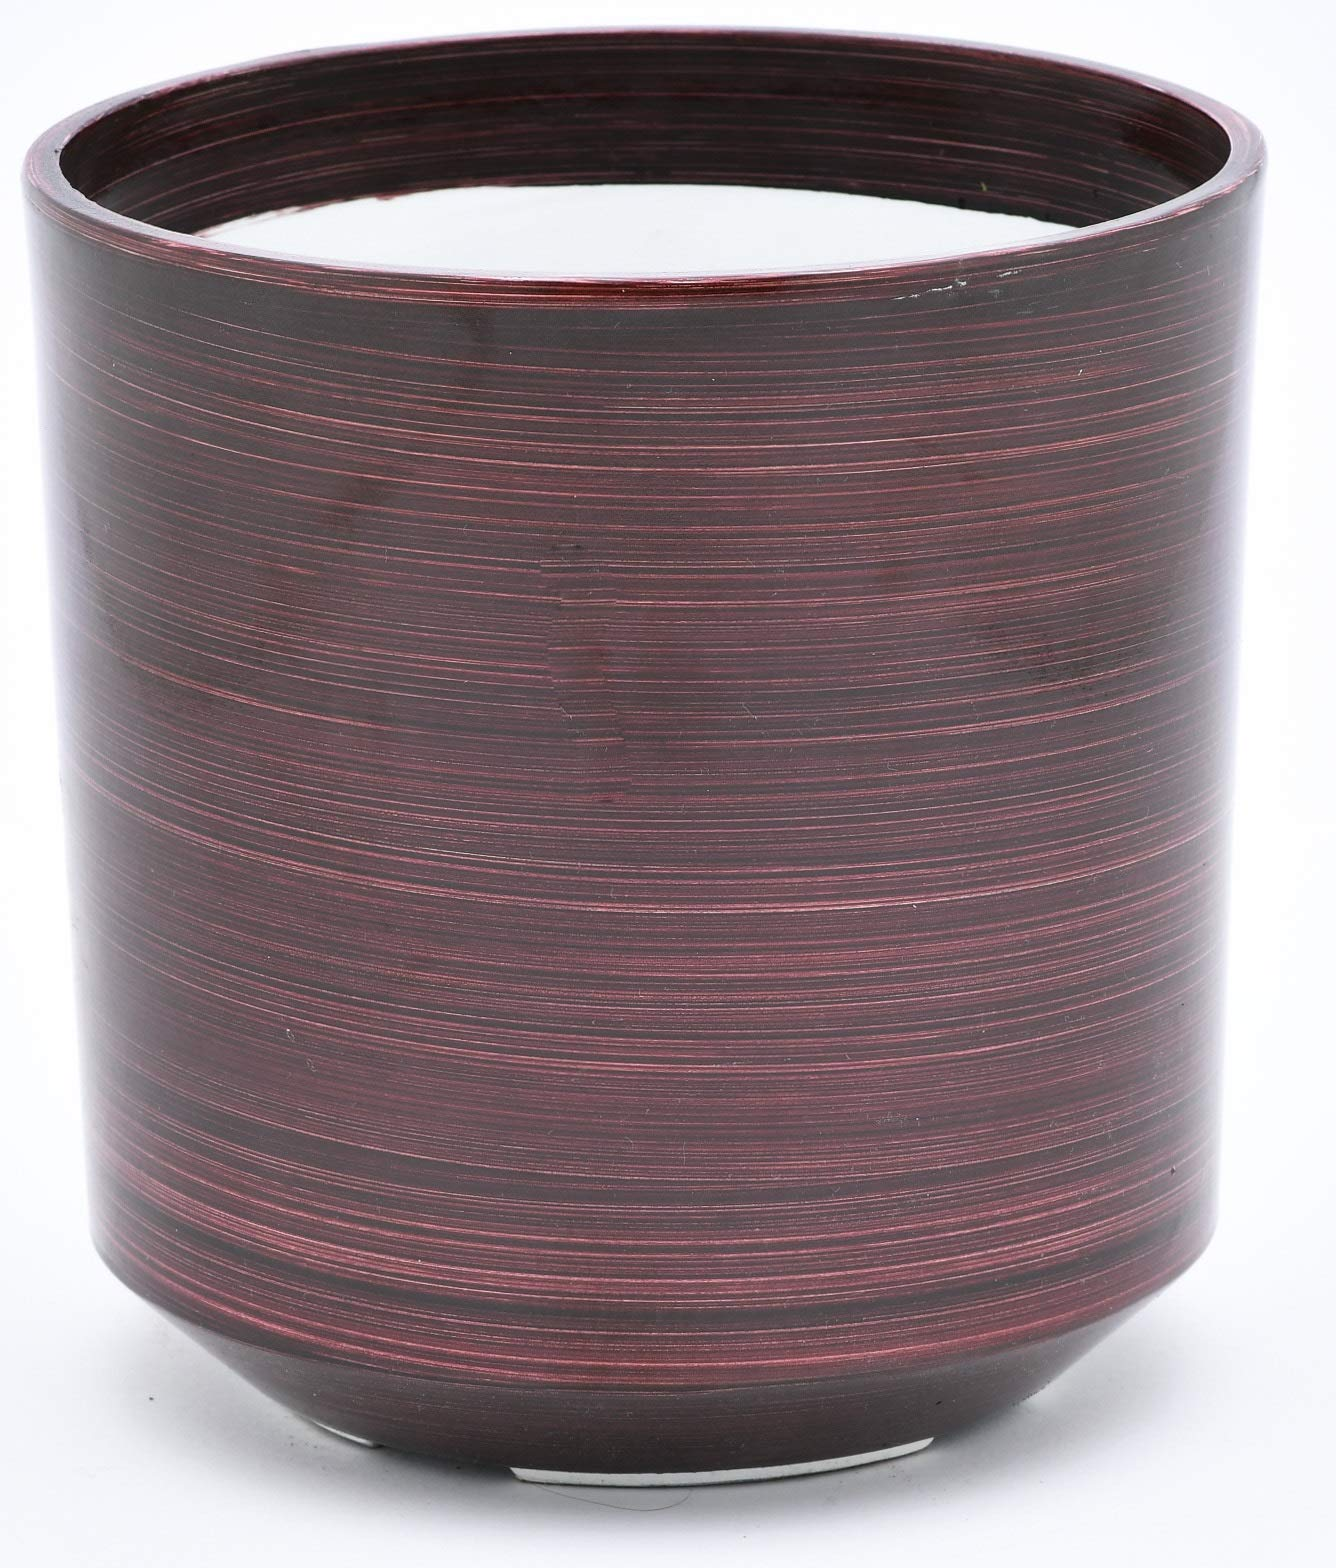 TABOR TOOLS Round Plastic Planter, Light Weight Material Painted in Trendy Colors, Features Optional Drainage Hole with Plug, Height 9 Inch ⌀ 8 Inch. VB108A. (Shiny Finish - Burgundy Red)